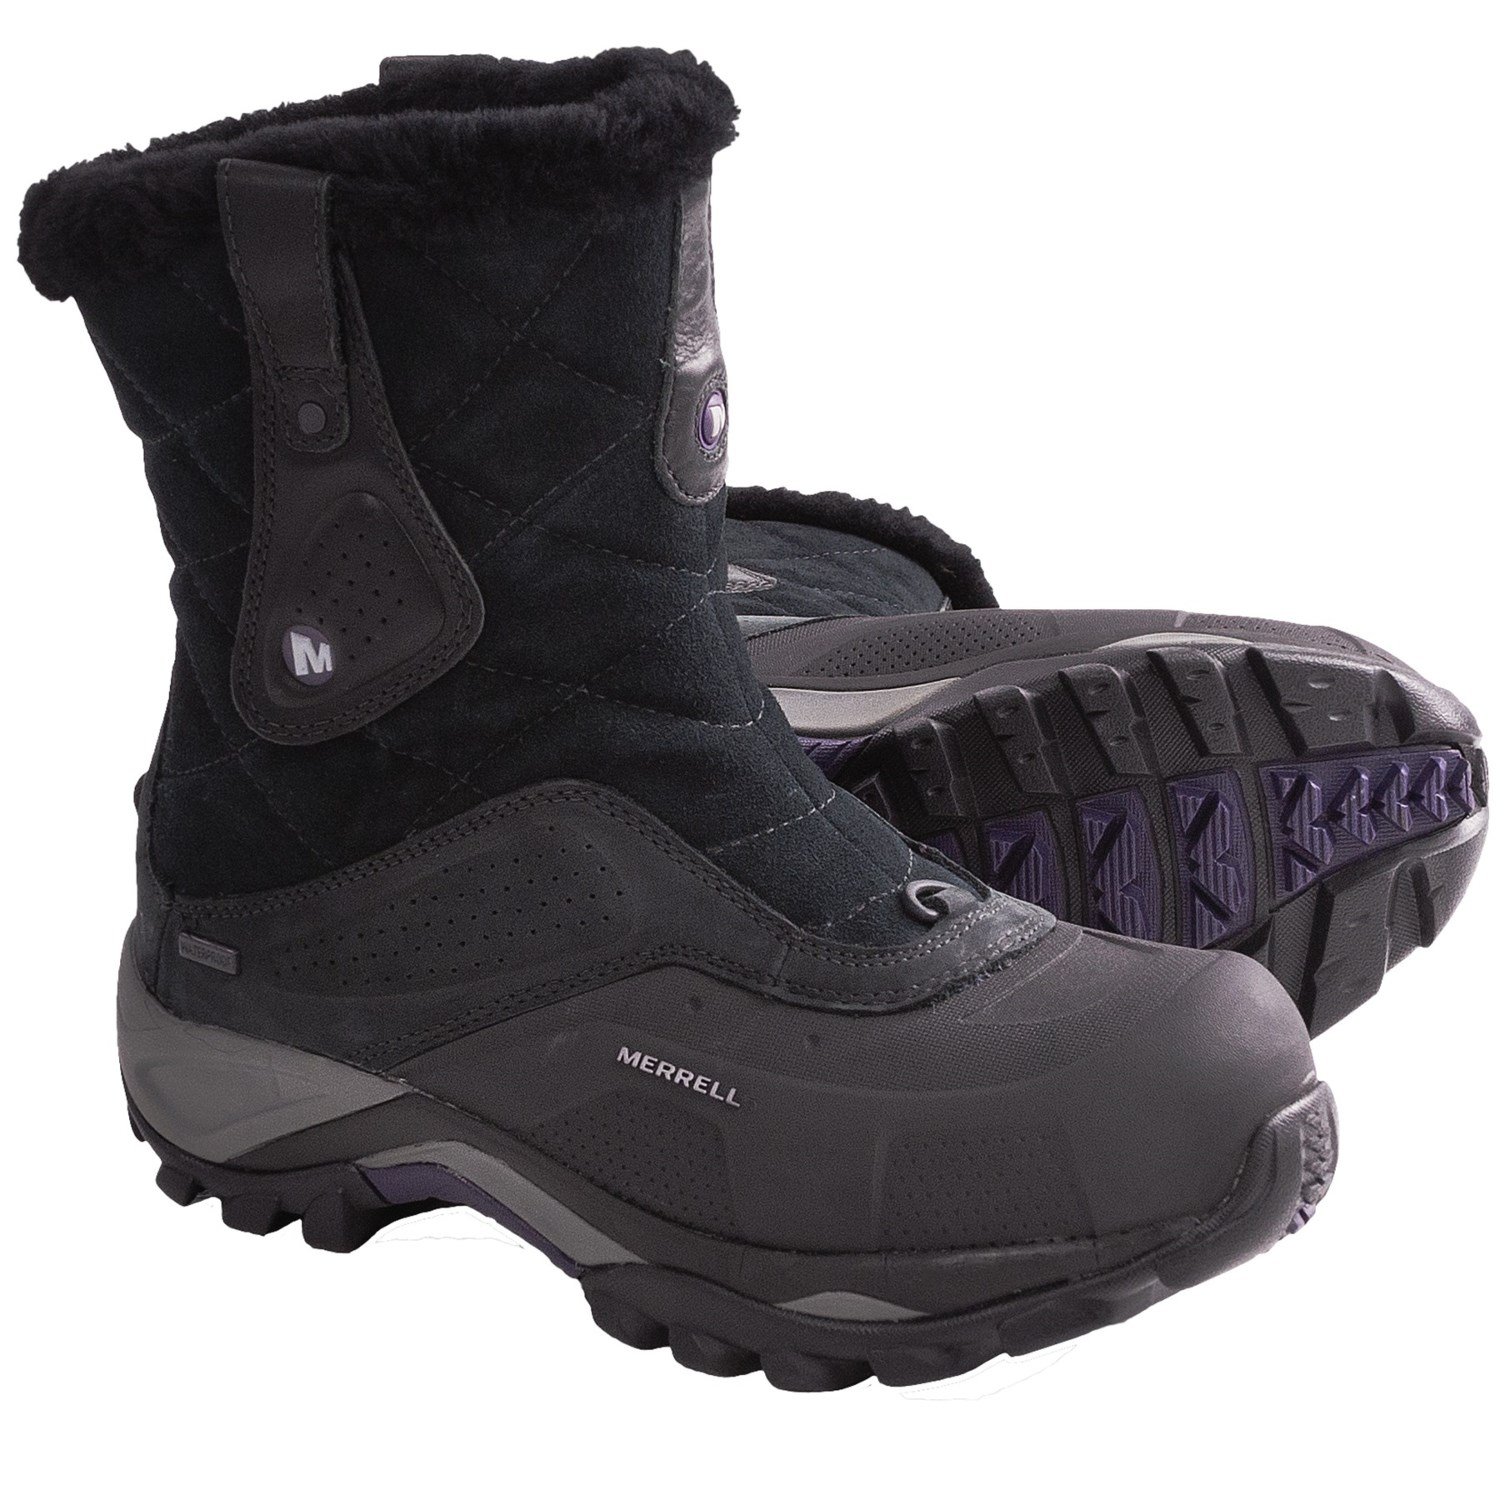 Excellent Merrell Snowfury Waterproof Womens Boots  Black At